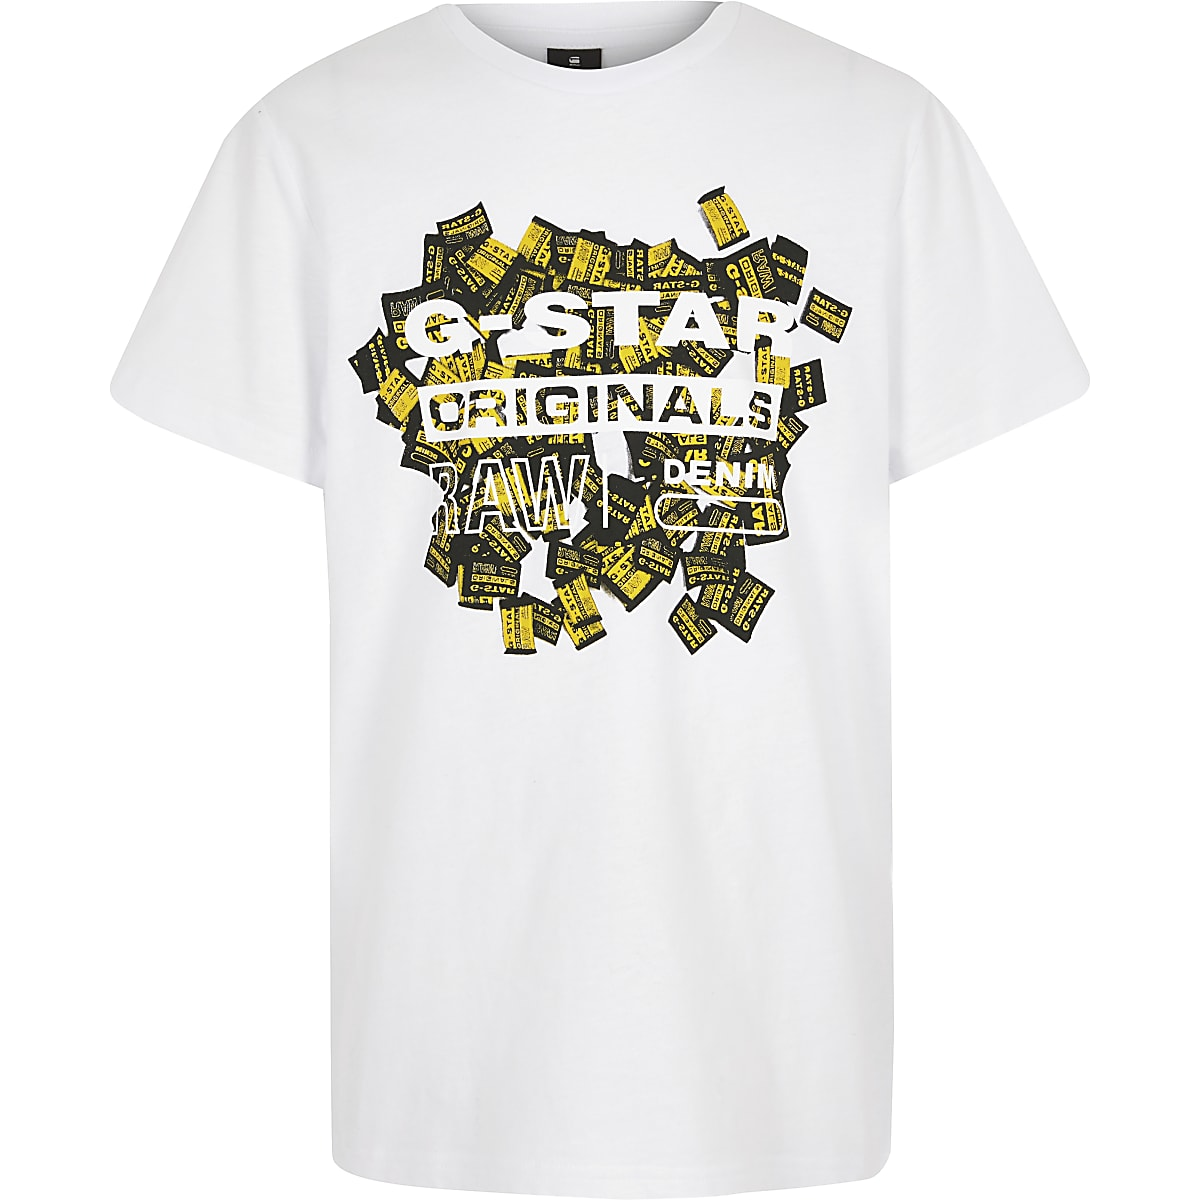 Boys G-star Originals camo print T-shirt